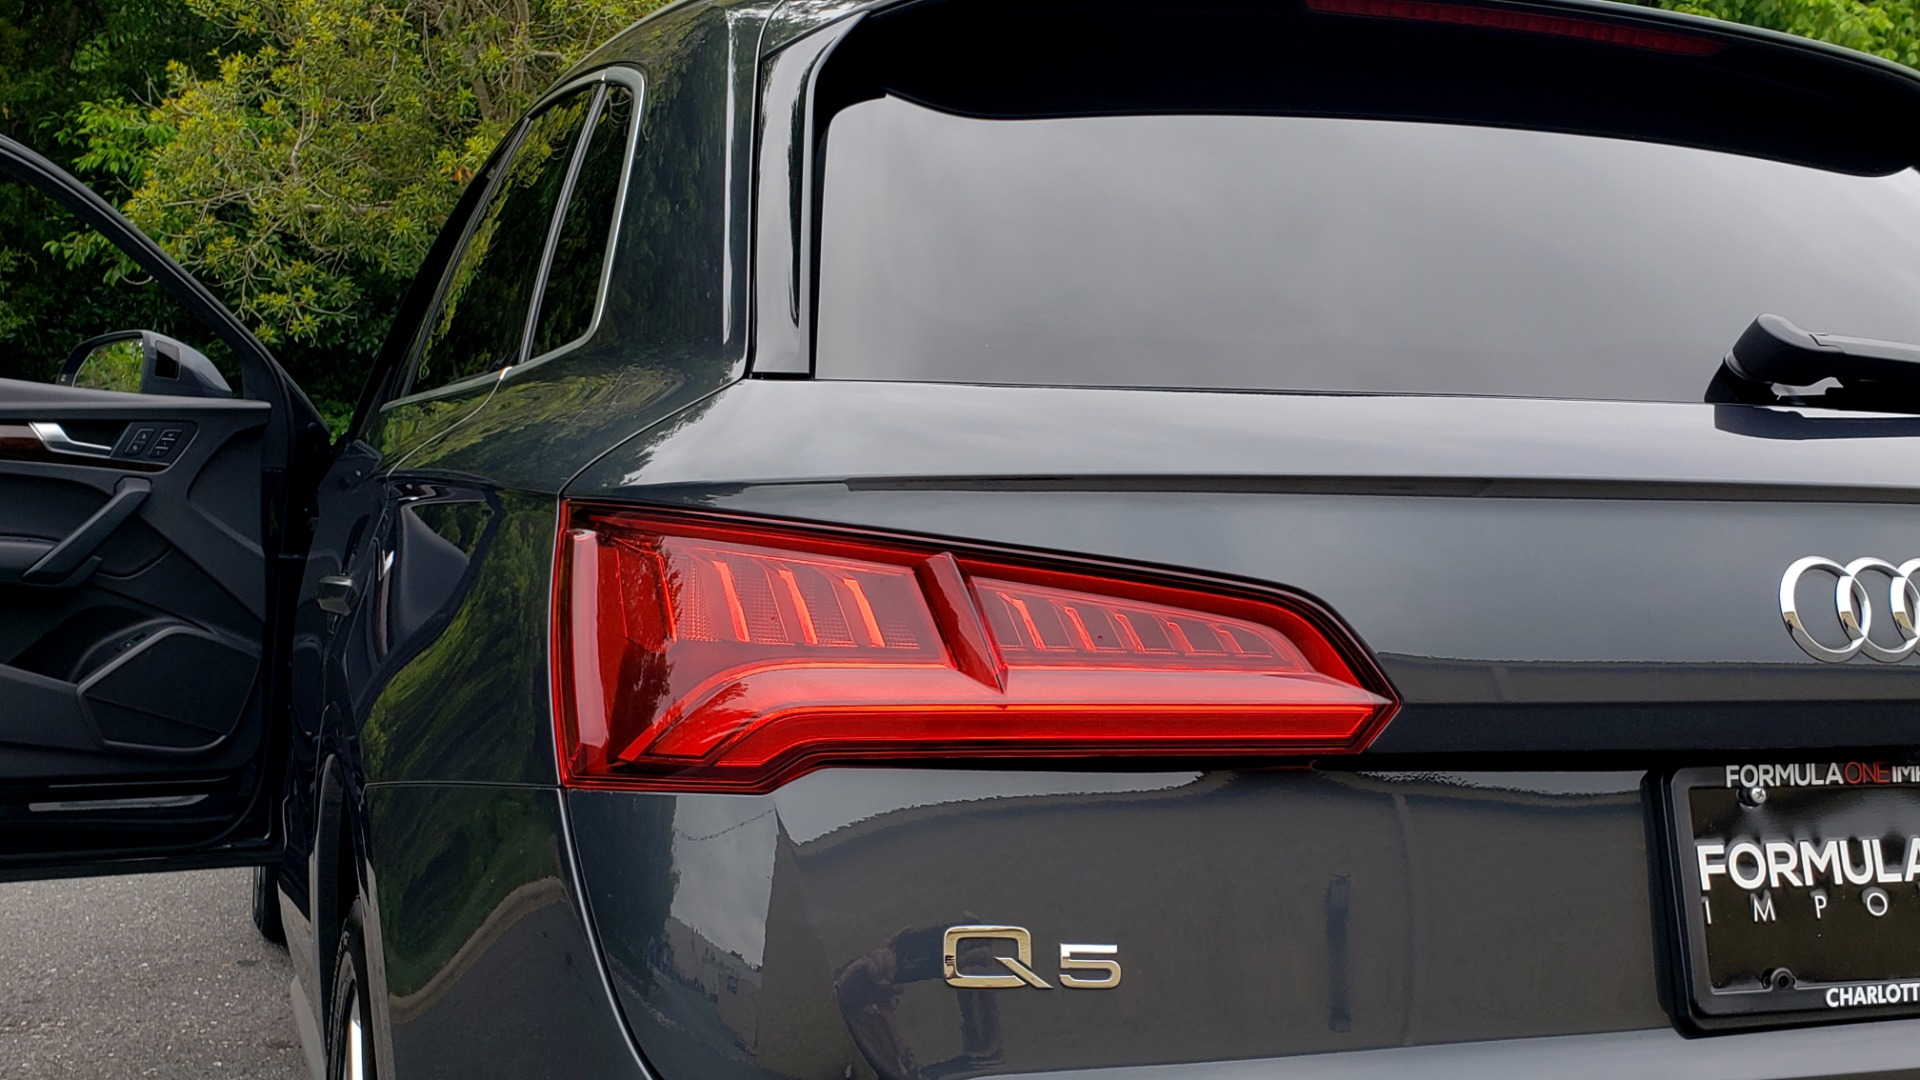 Used 2018 Audi Q5 PREMIUM PLUS / S-TRONIC / NAV / PANO-ROOF / PARK SYS PLUS for sale Sold at Formula Imports in Charlotte NC 28227 29